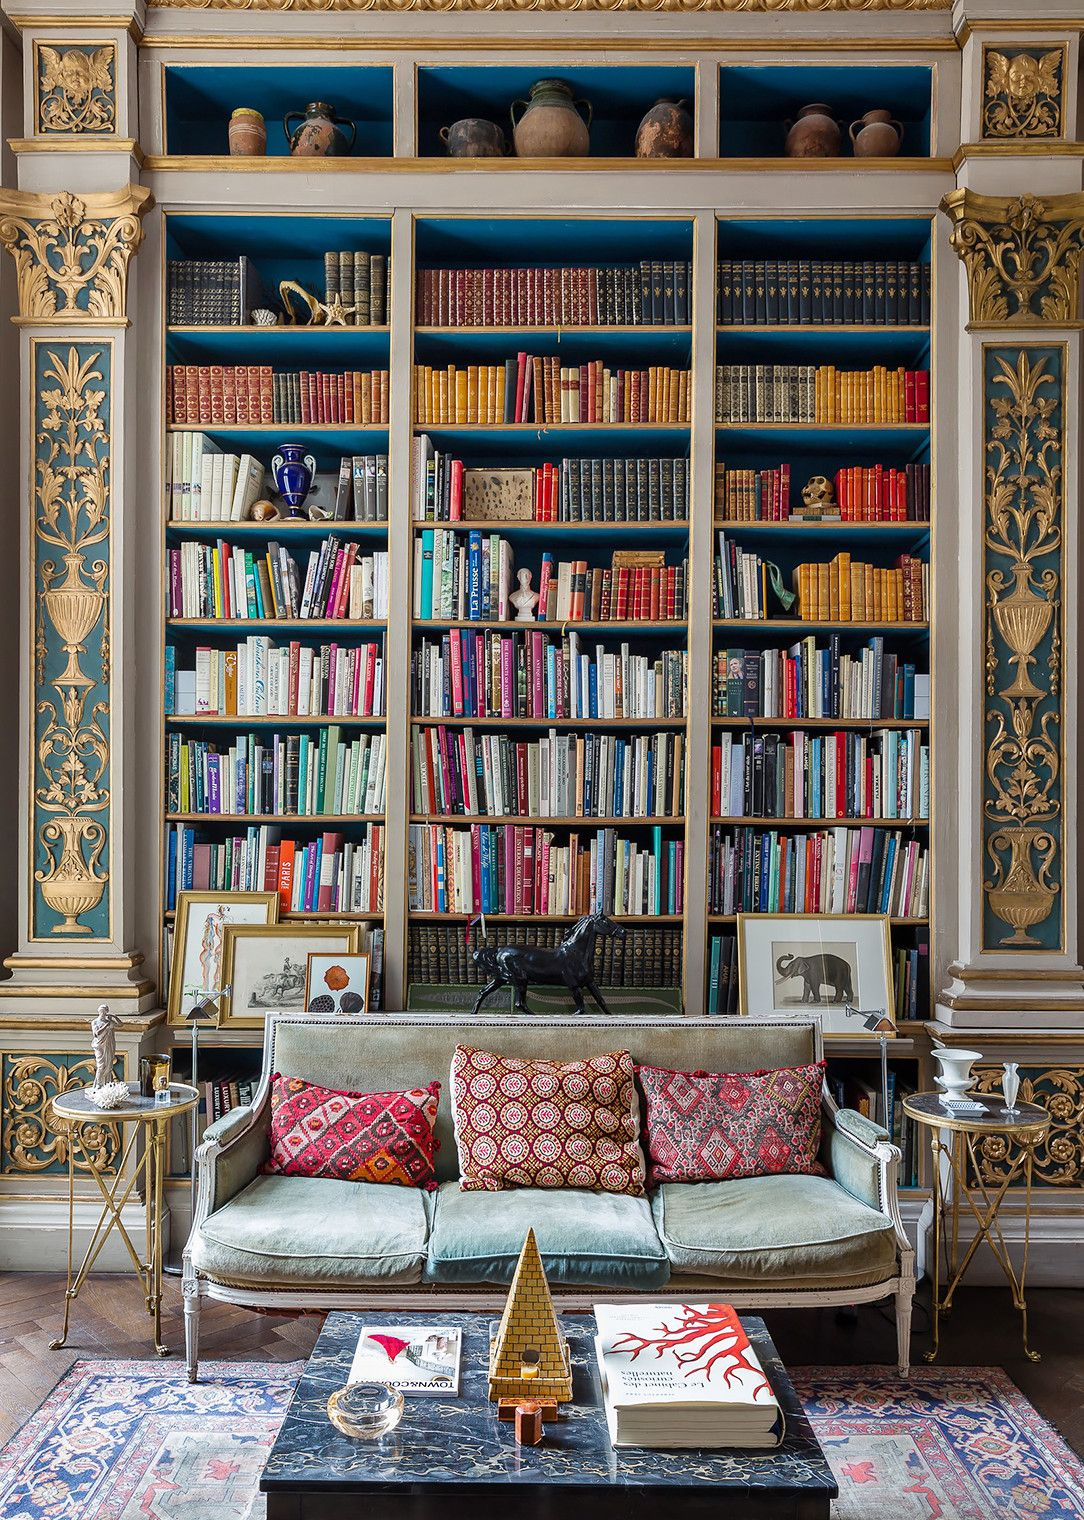 9 Insanely Chic Home Libraries Jaws Drop